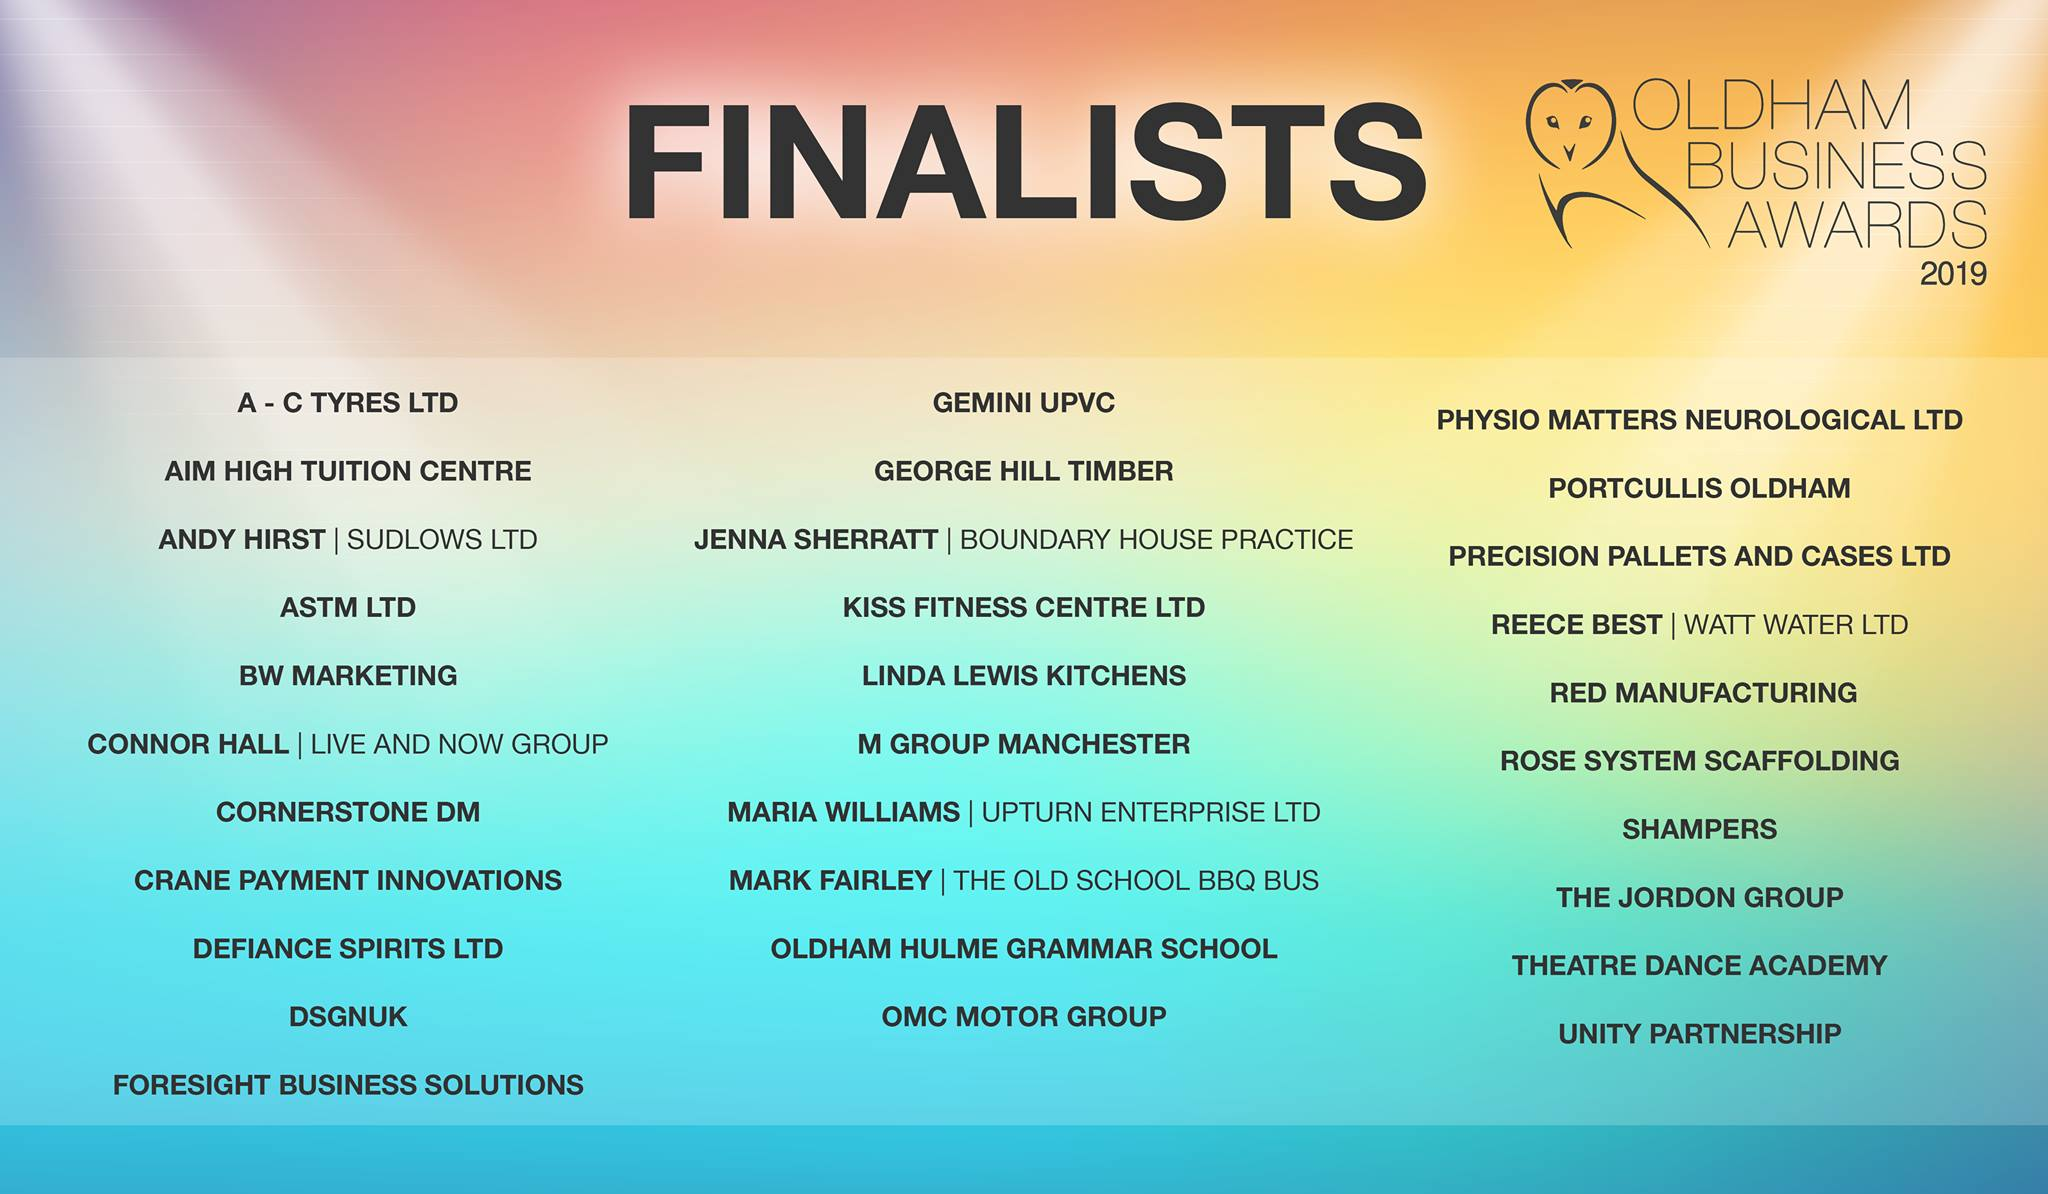 Finalists unveiled ahead of annual business awards – Saddleworth